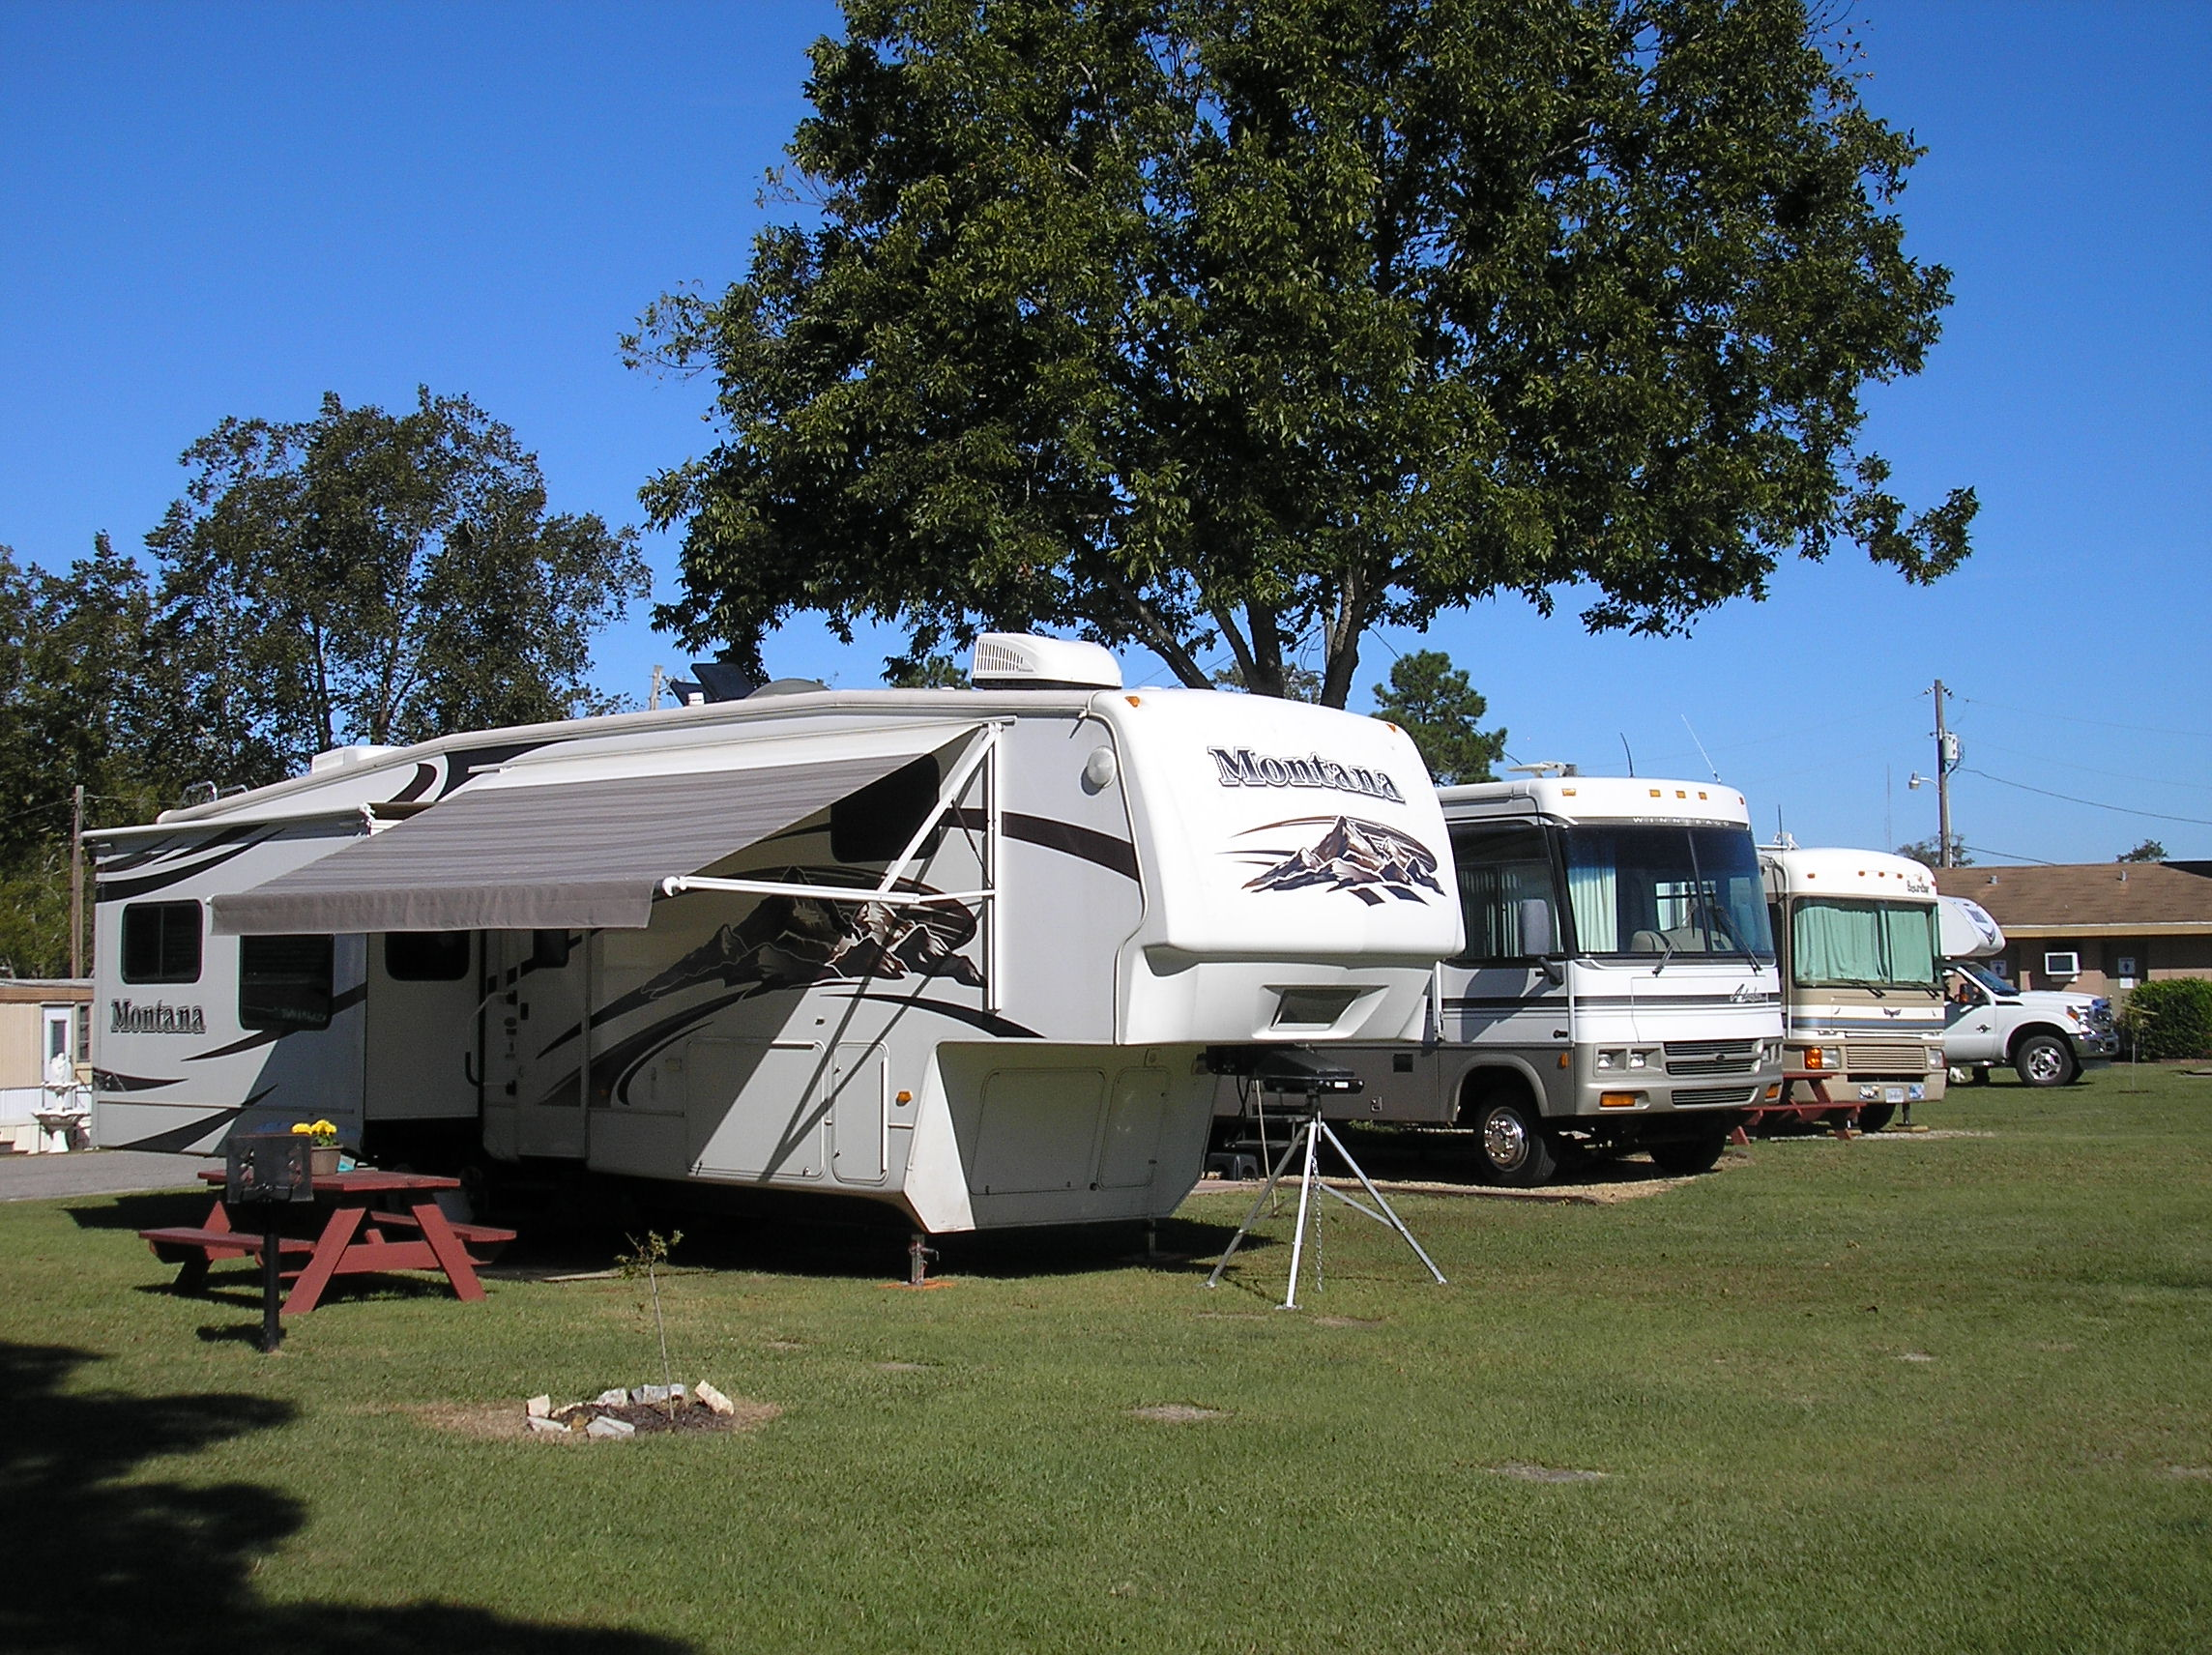 Cherry Blossom RV Park Is A Quiet Family Friendly And Mobile Home In Close Proximity To The City Of Dothan National Peanut Festival